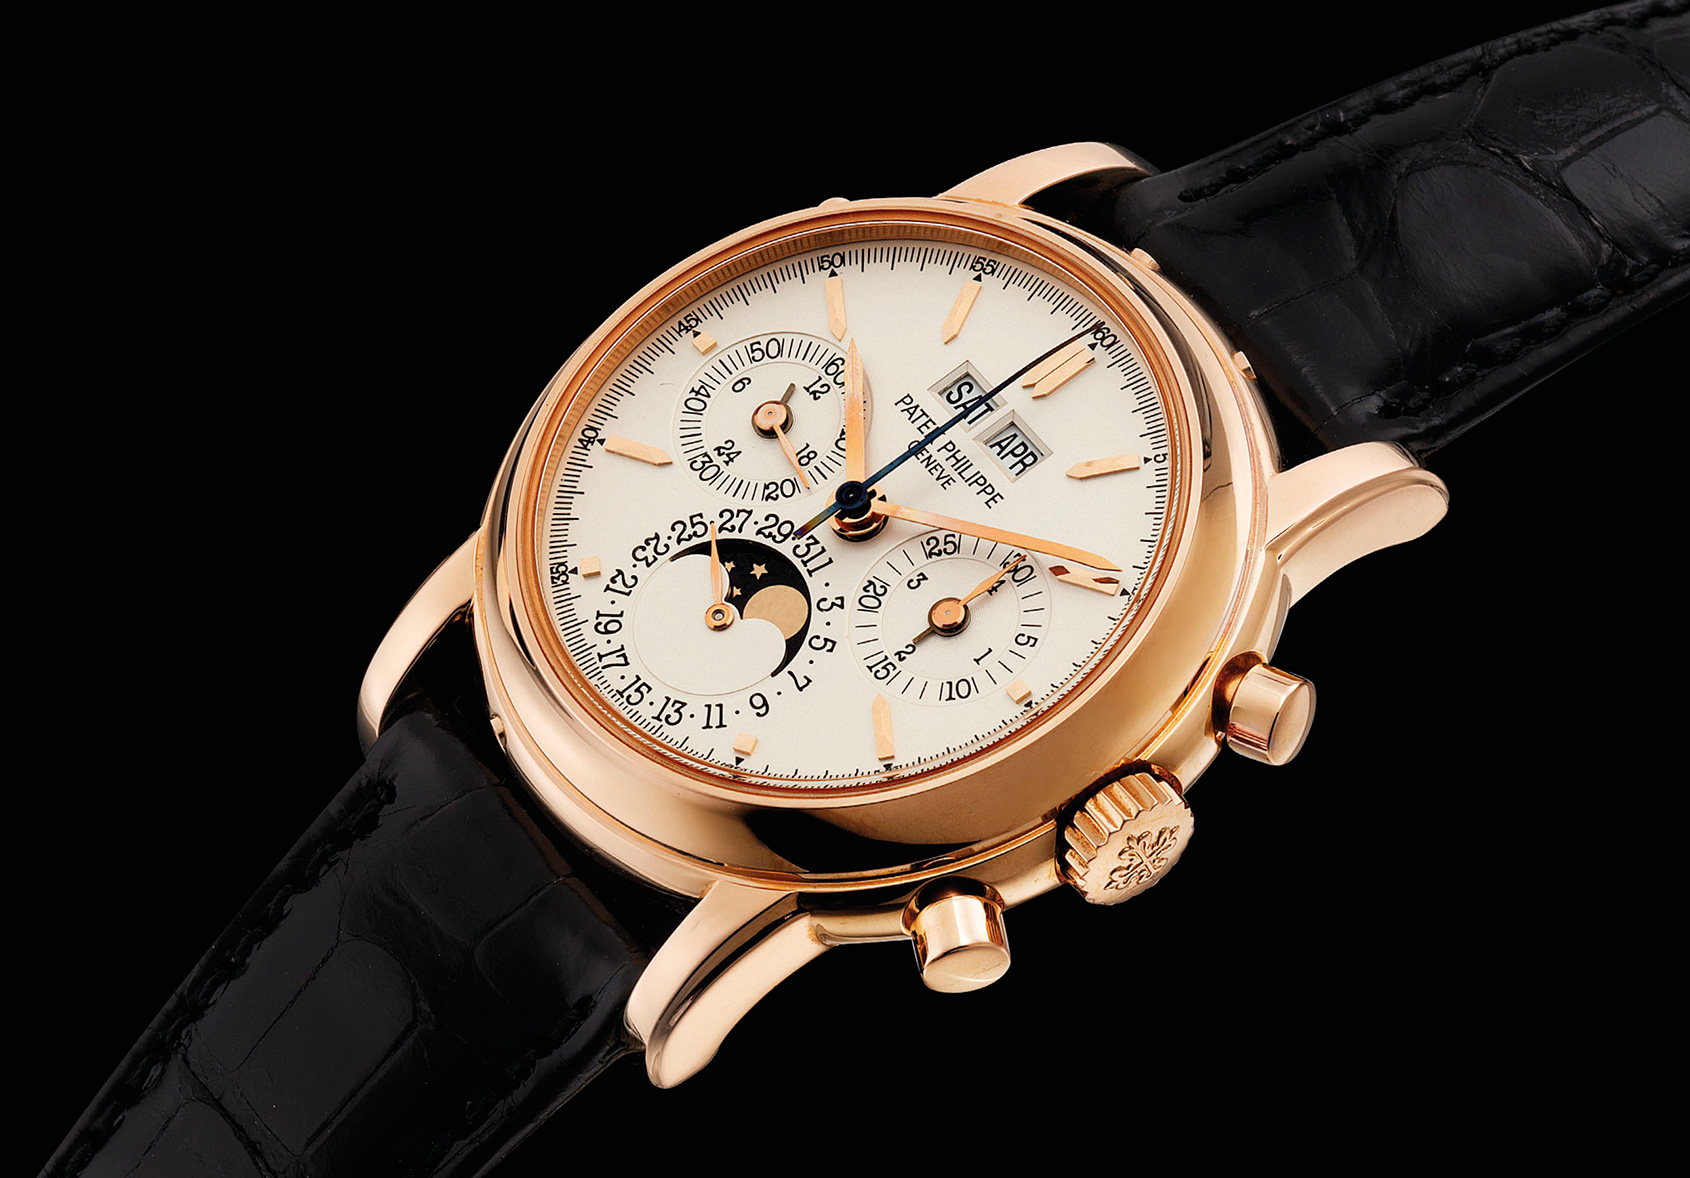 6 Expert Takes On The Best Value Watches To Buy